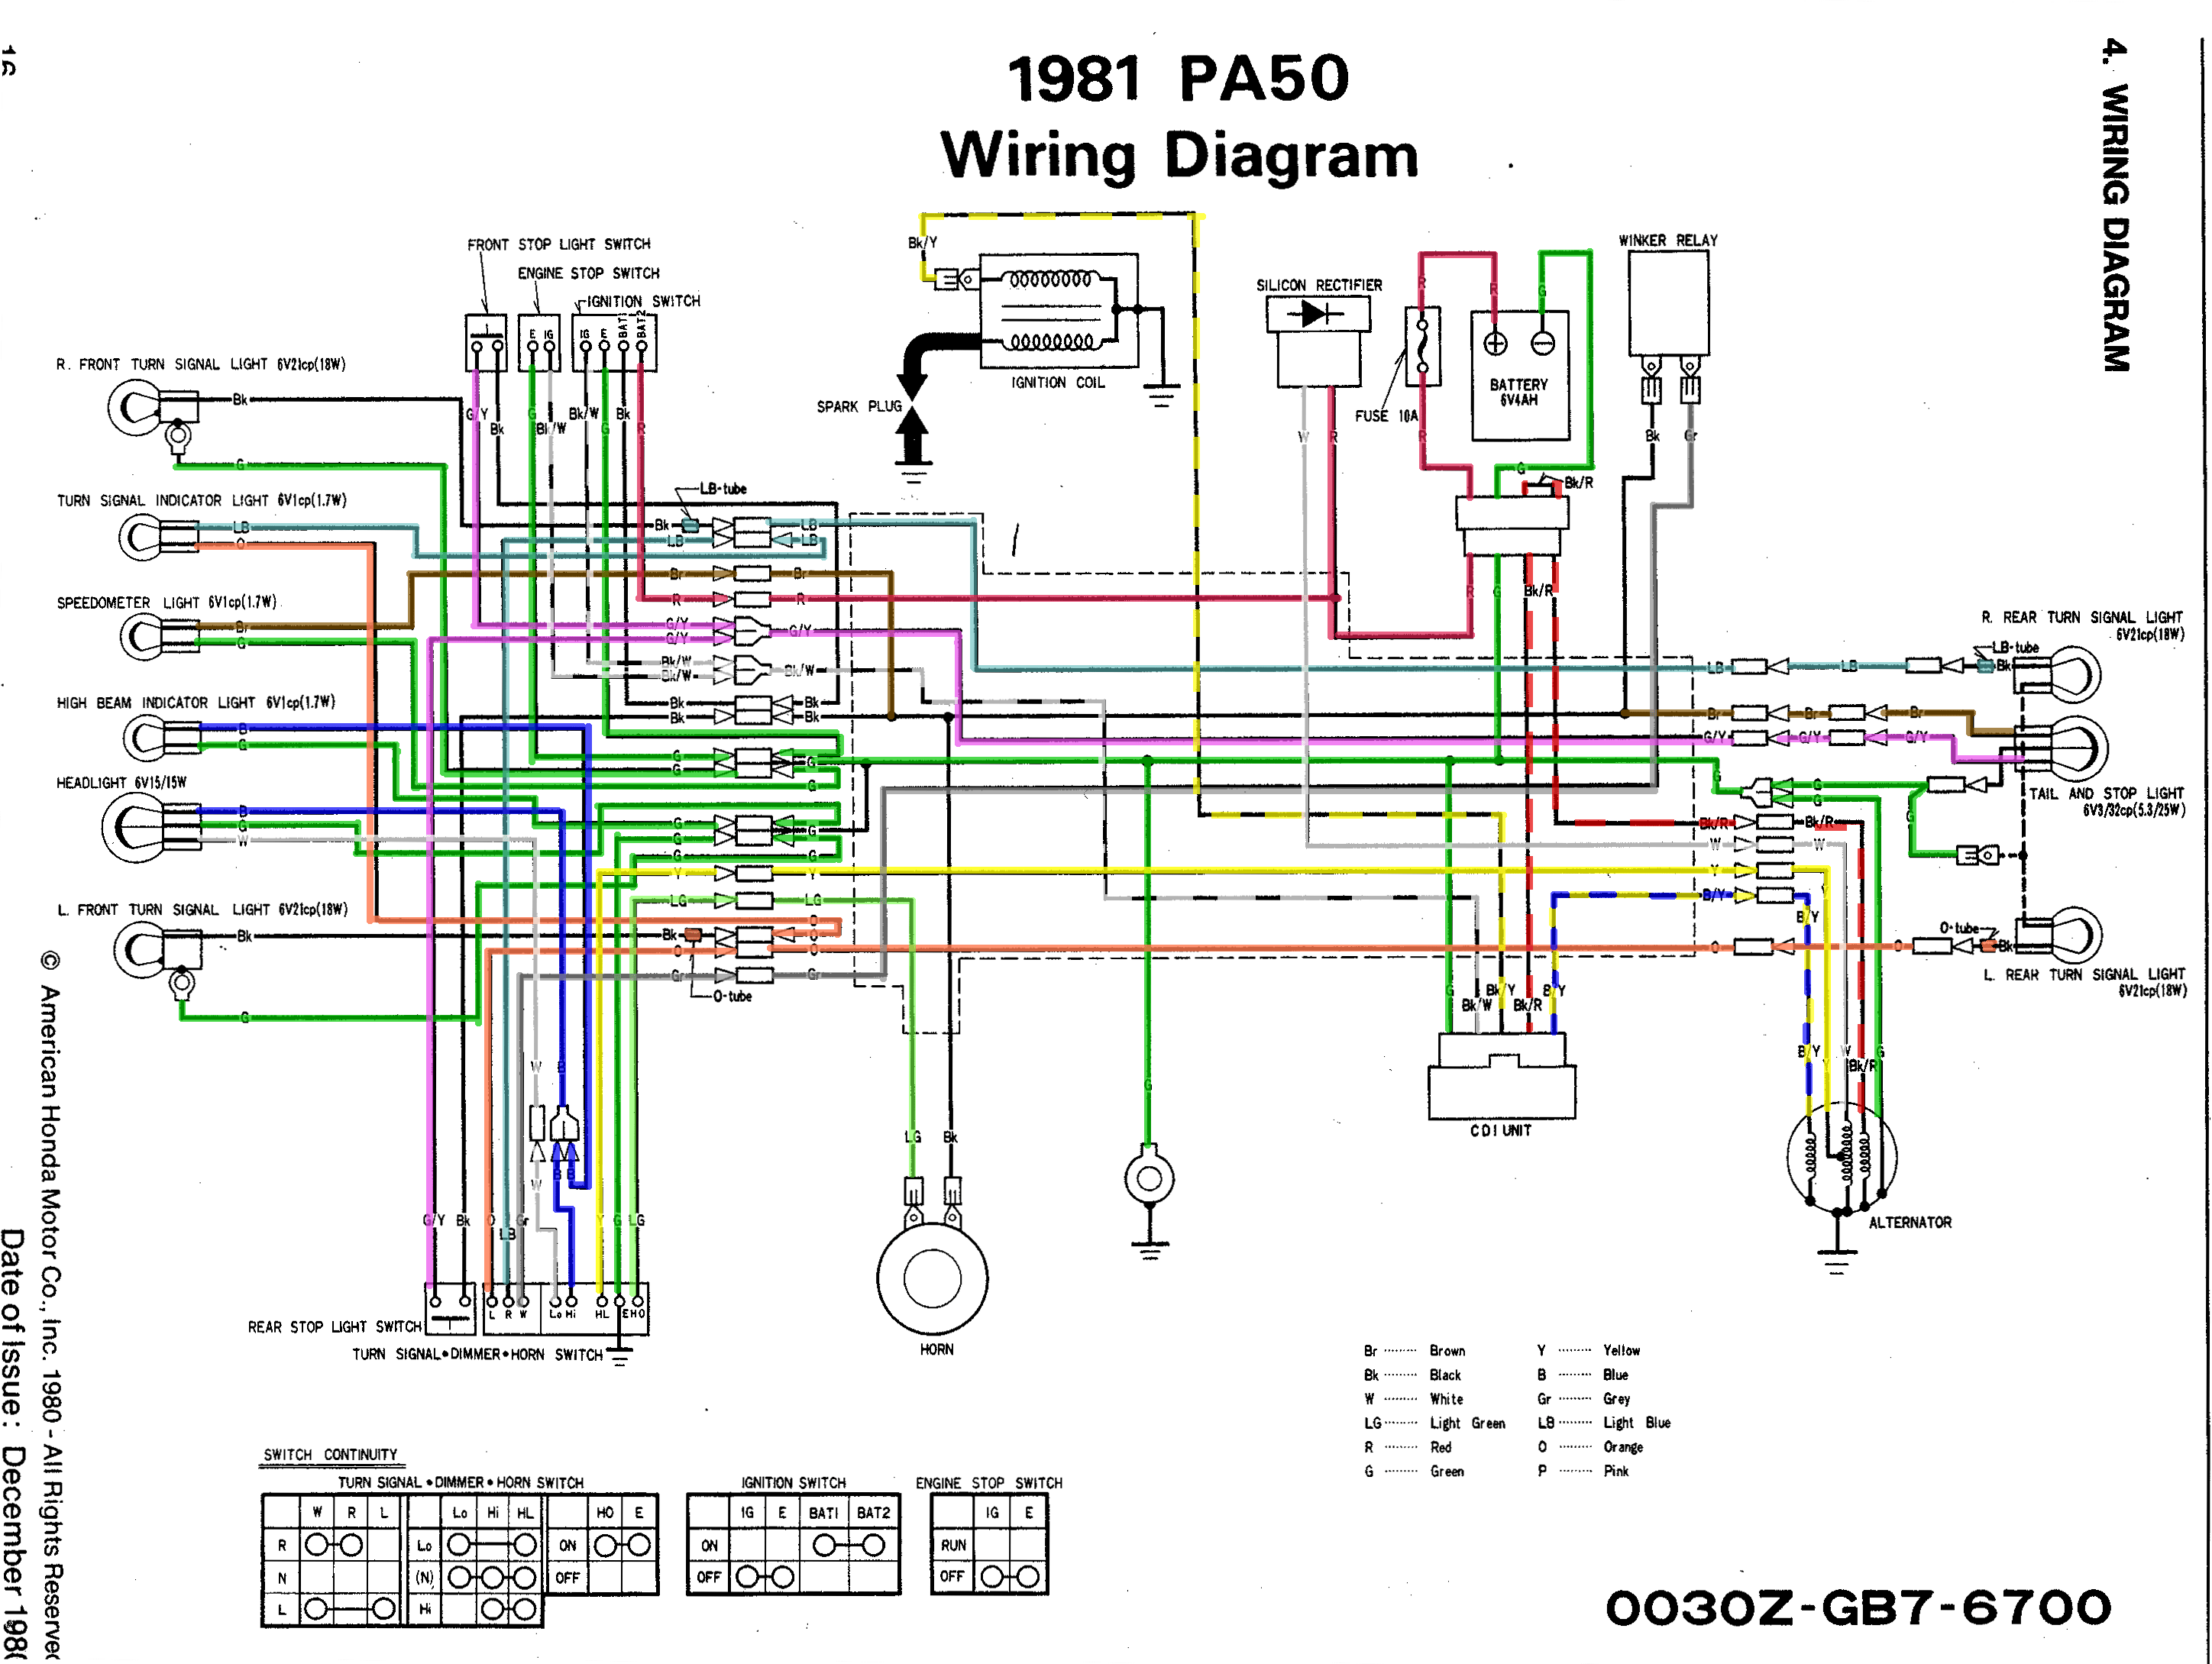 50qt Moped Wiring Diagram 2003 F350 Super Duty Fuse Box Diagram Valkyrie Losdol Jeanjaures37 Fr